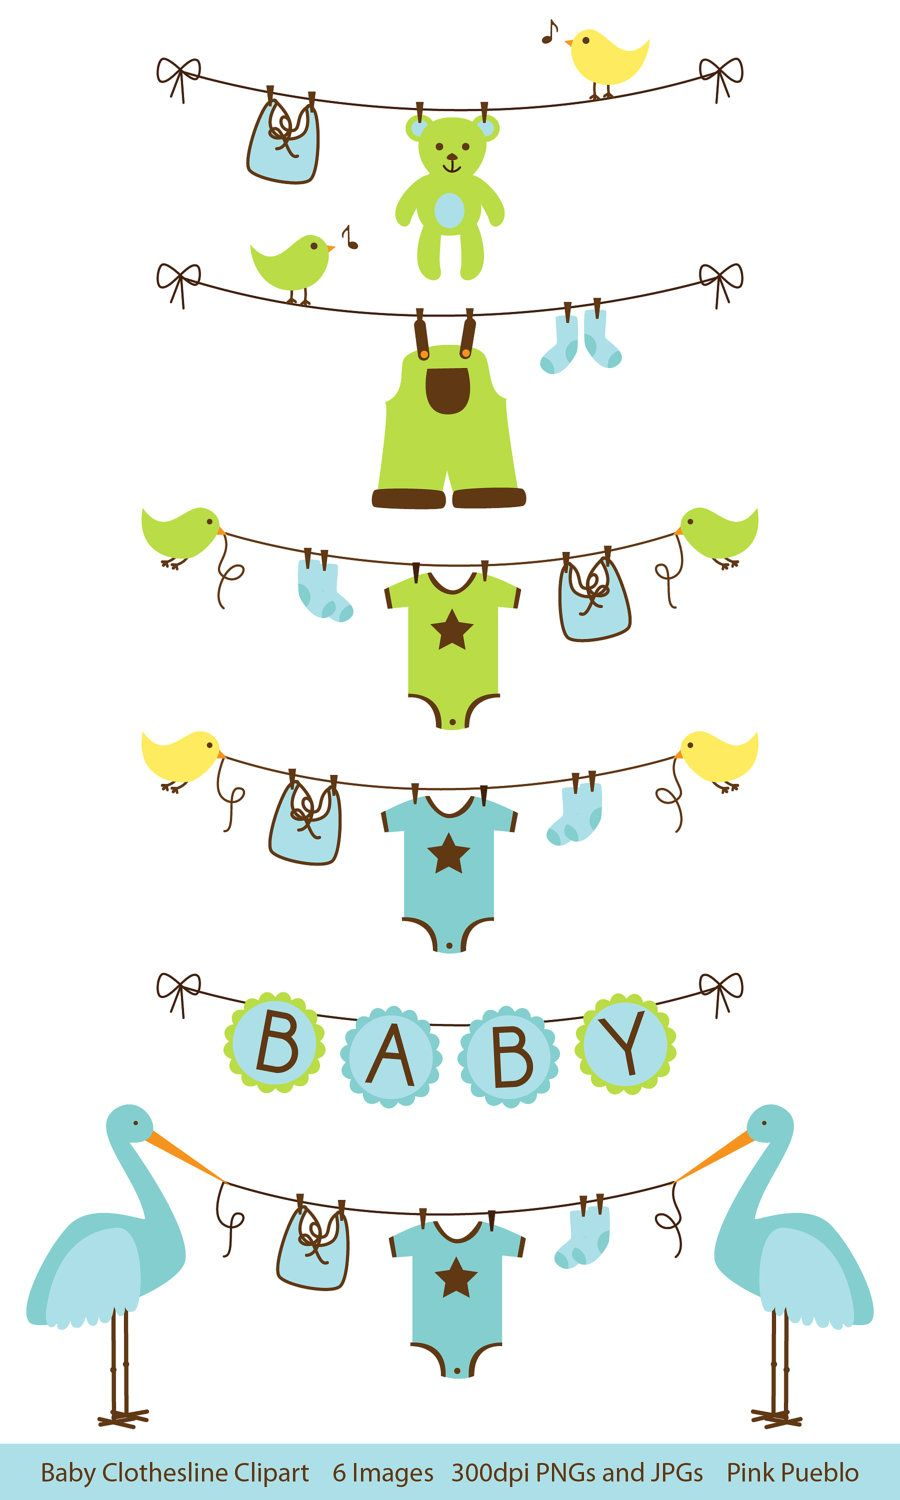 baby clip art clipart clothesline laundry line baby shower clip art baby bunting clip art baby bunting clipart commercial use 6 00 via etsy  [ 900 x 1500 Pixel ]